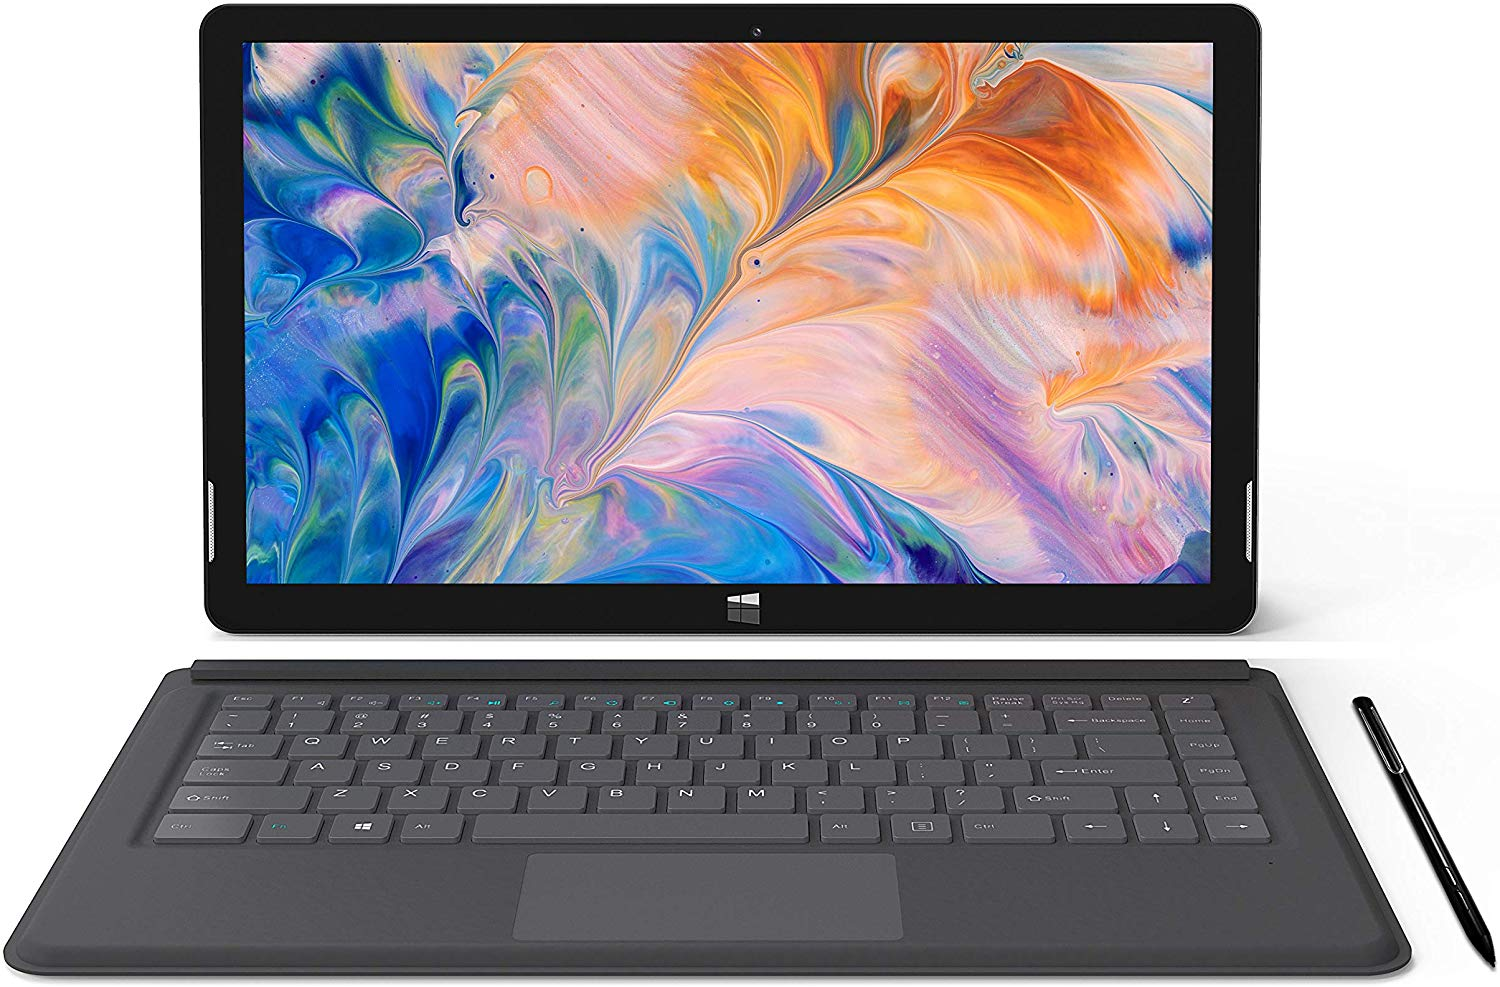 XIDU PhilPad 2-in-1 Touchscreen Laptop, 13.3-inch